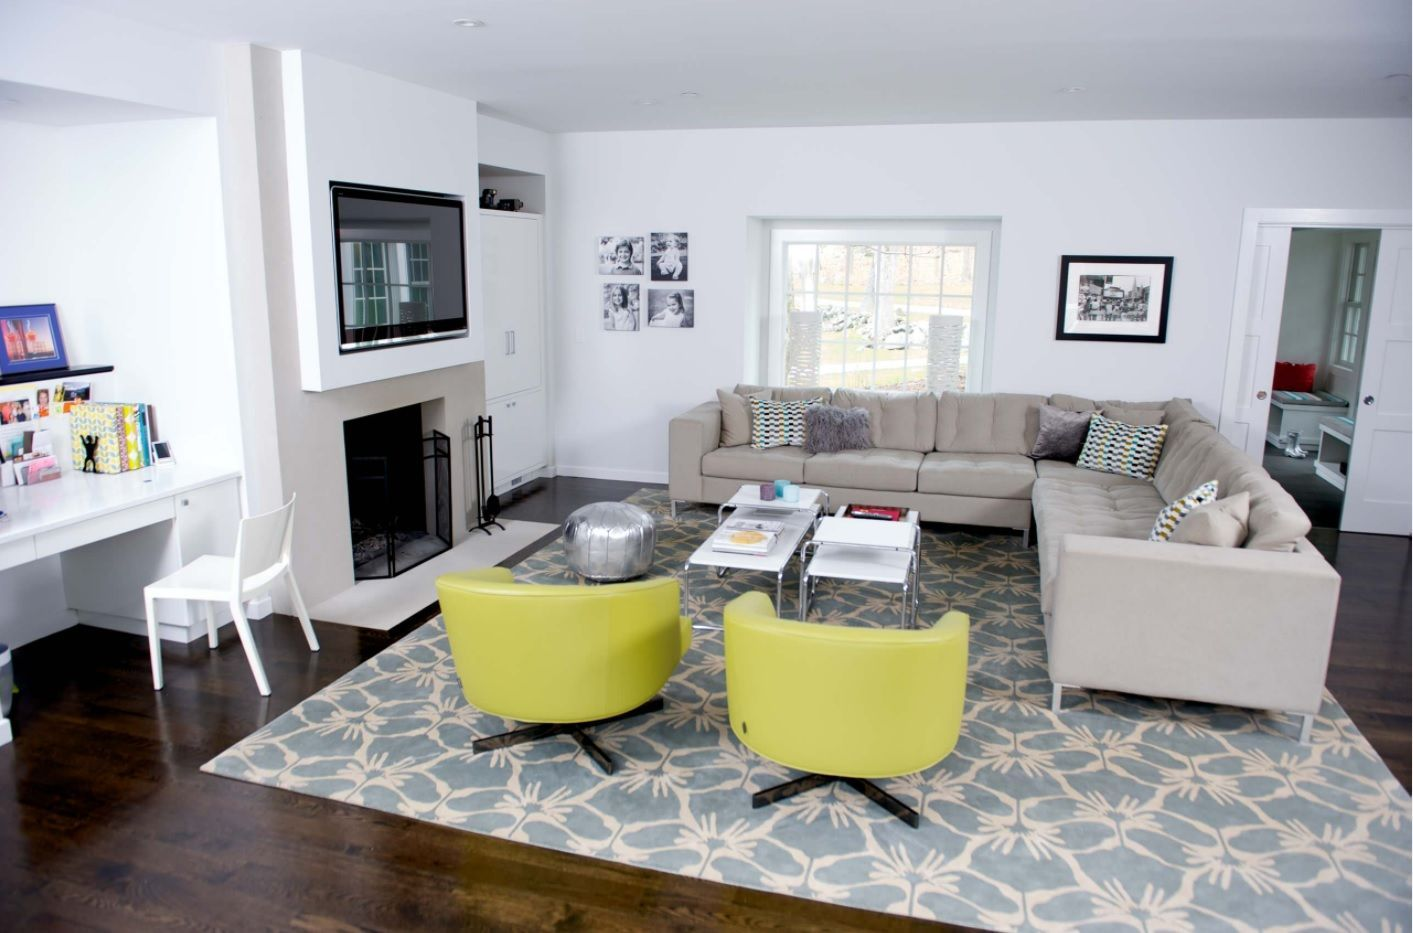 Living Room Layout Design & Decoration Ideas. Bright yellow armchairs as accents in the Classic setting of the room